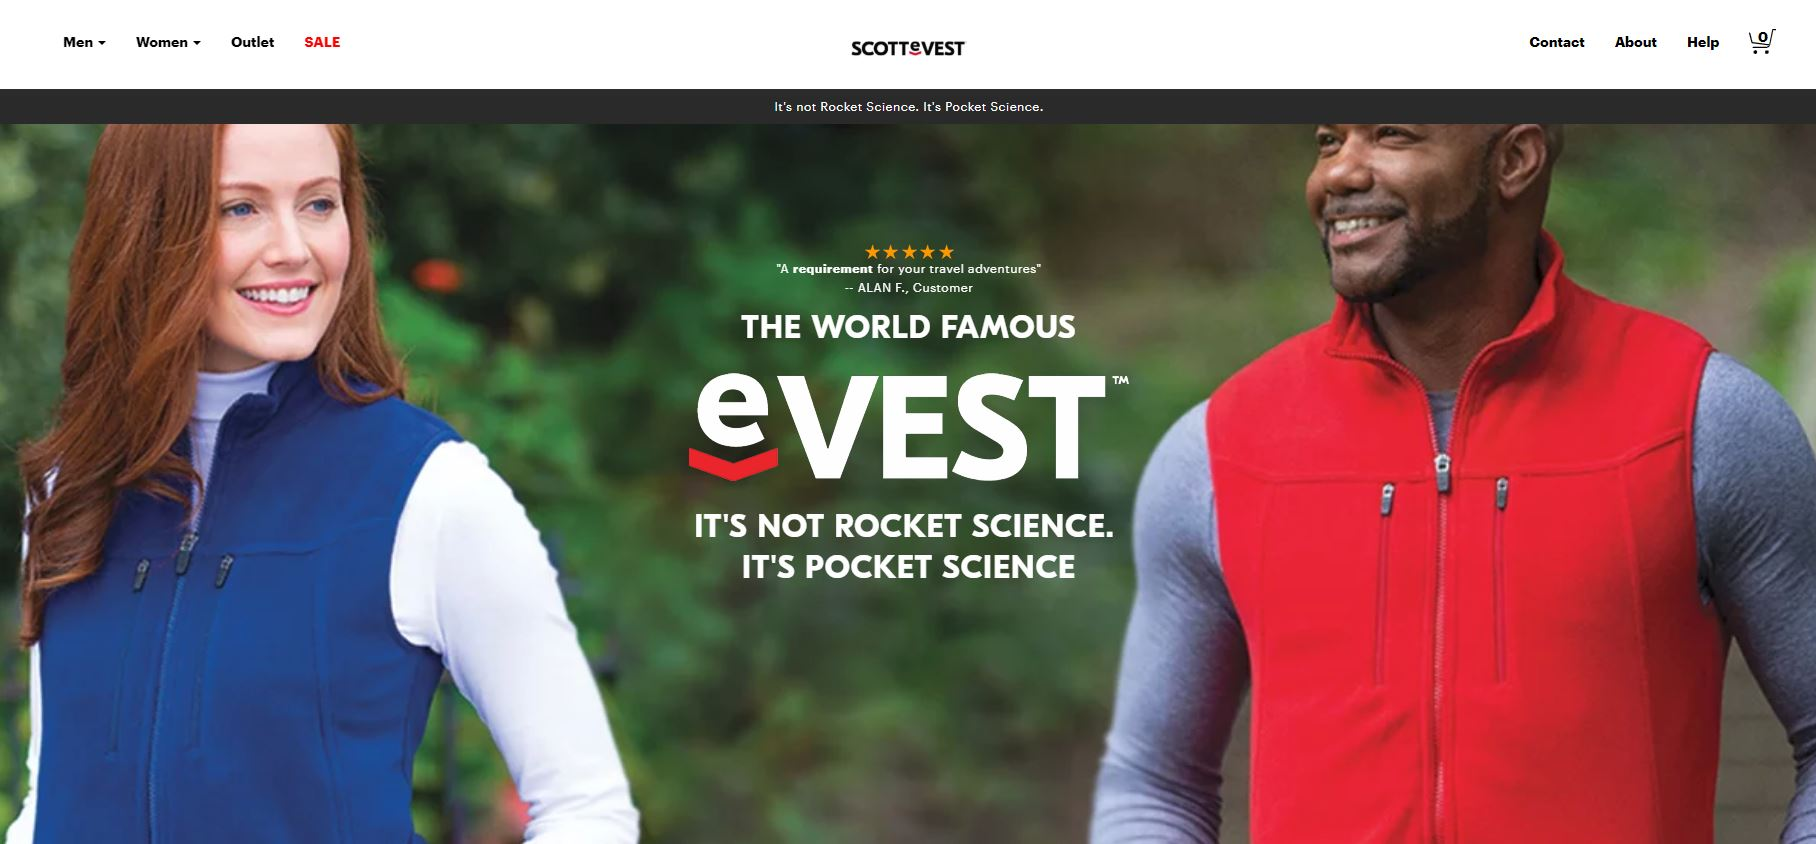 ScotteVest Website Homepage - Danielle B